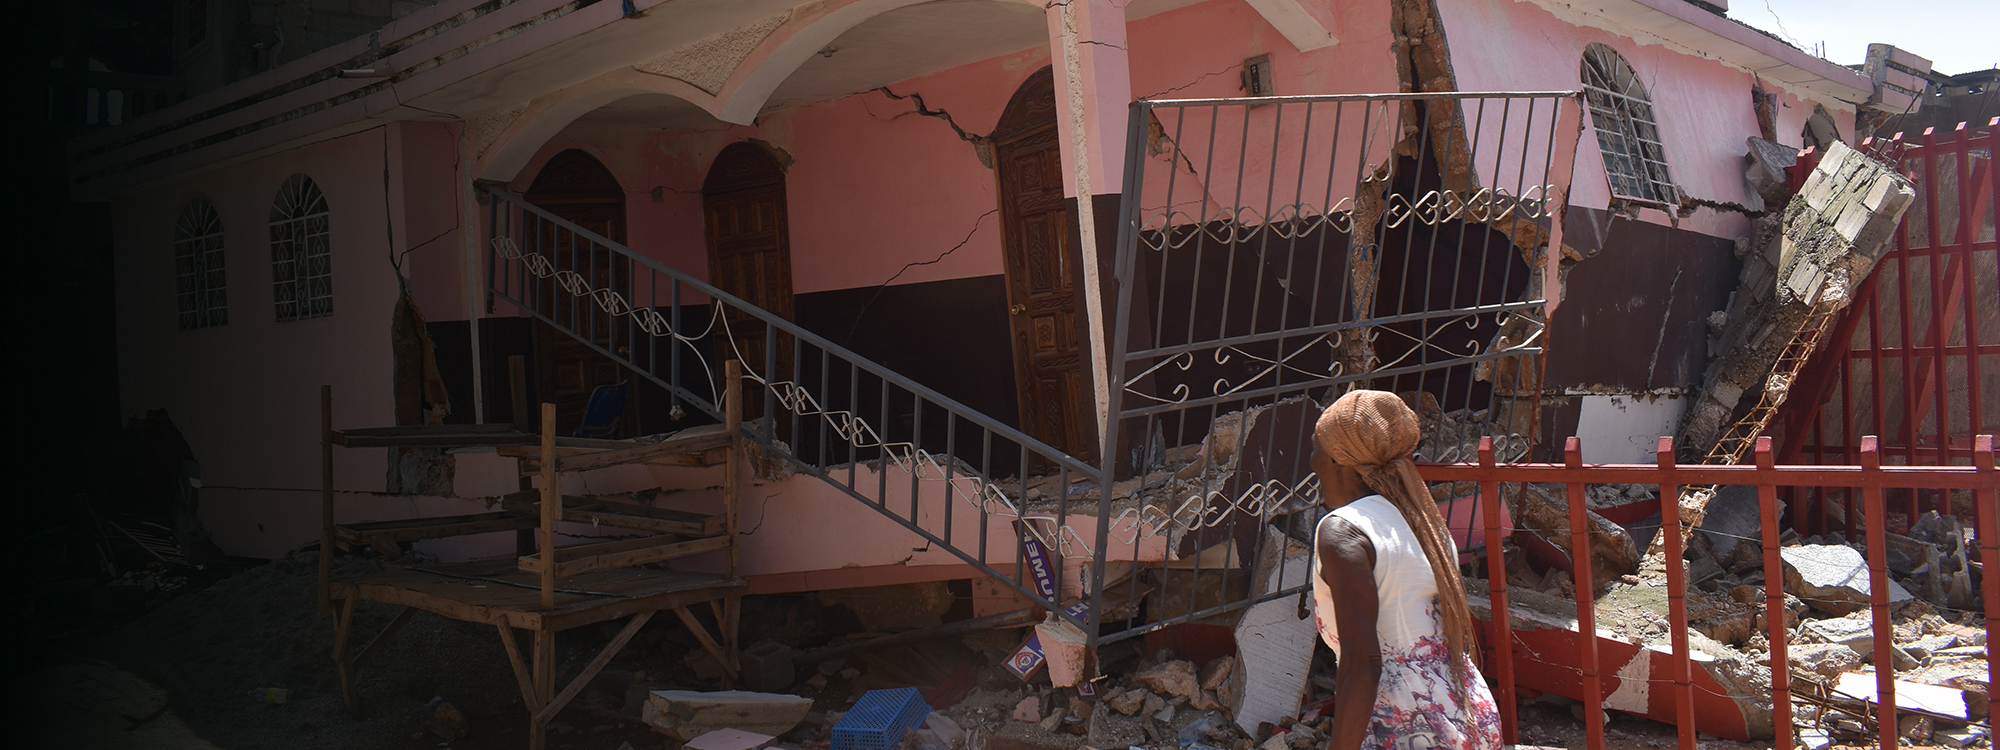 A destroyed home in Haiti after the earthquake in August 2021